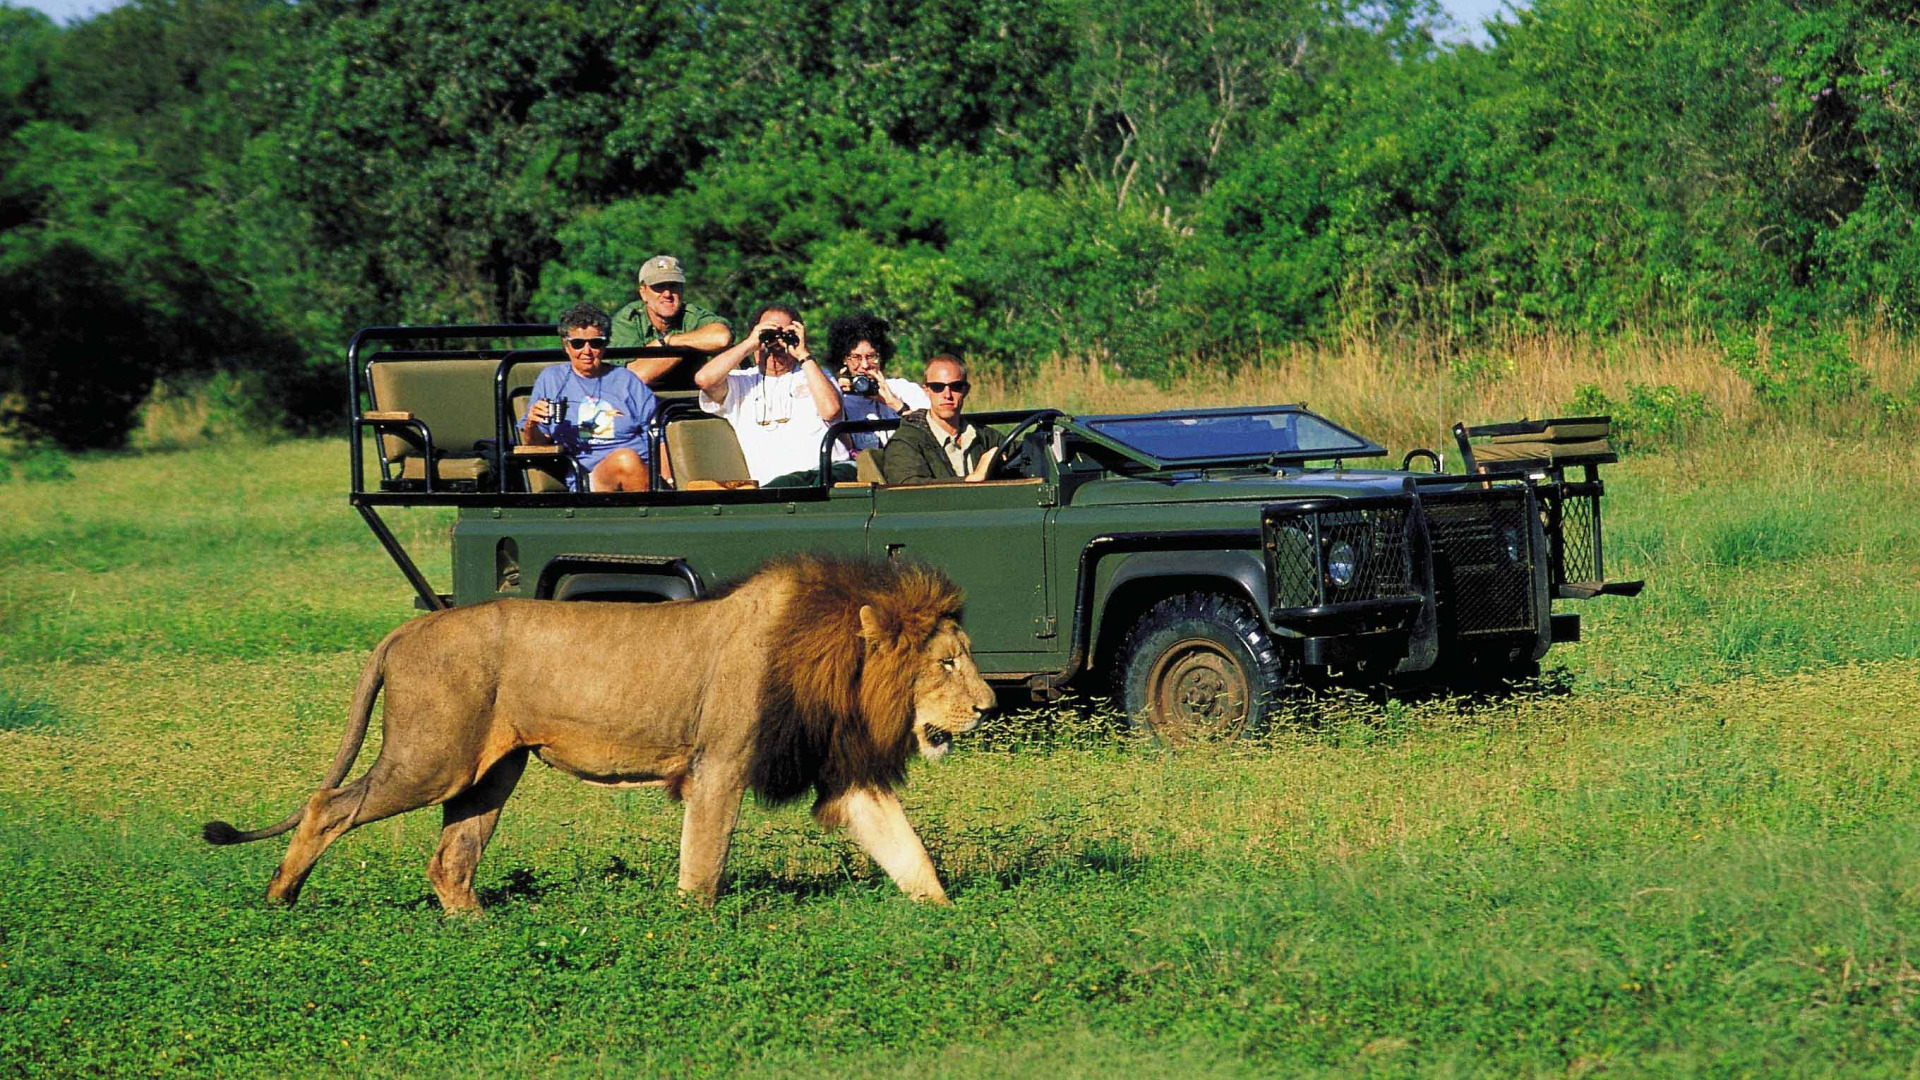 2 -5 day Garden Route Safari Adventure